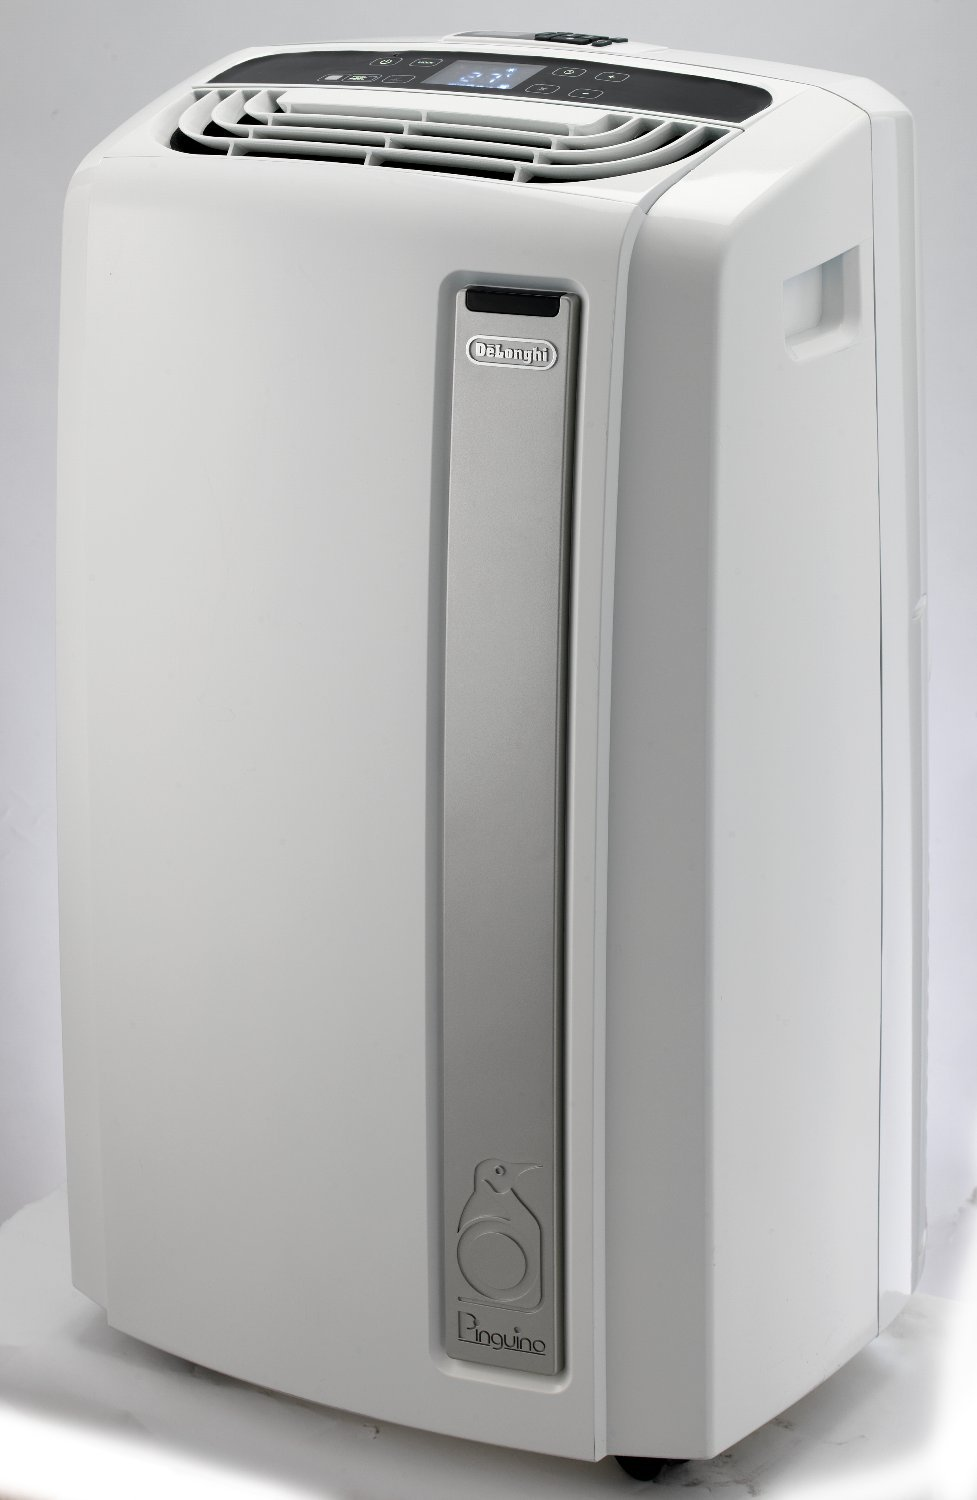 Portable Air Conditioner Troubleshooting Delonghi Pacn130hpe 13000 Btu 4 In 1 Portable Air Conditioner With